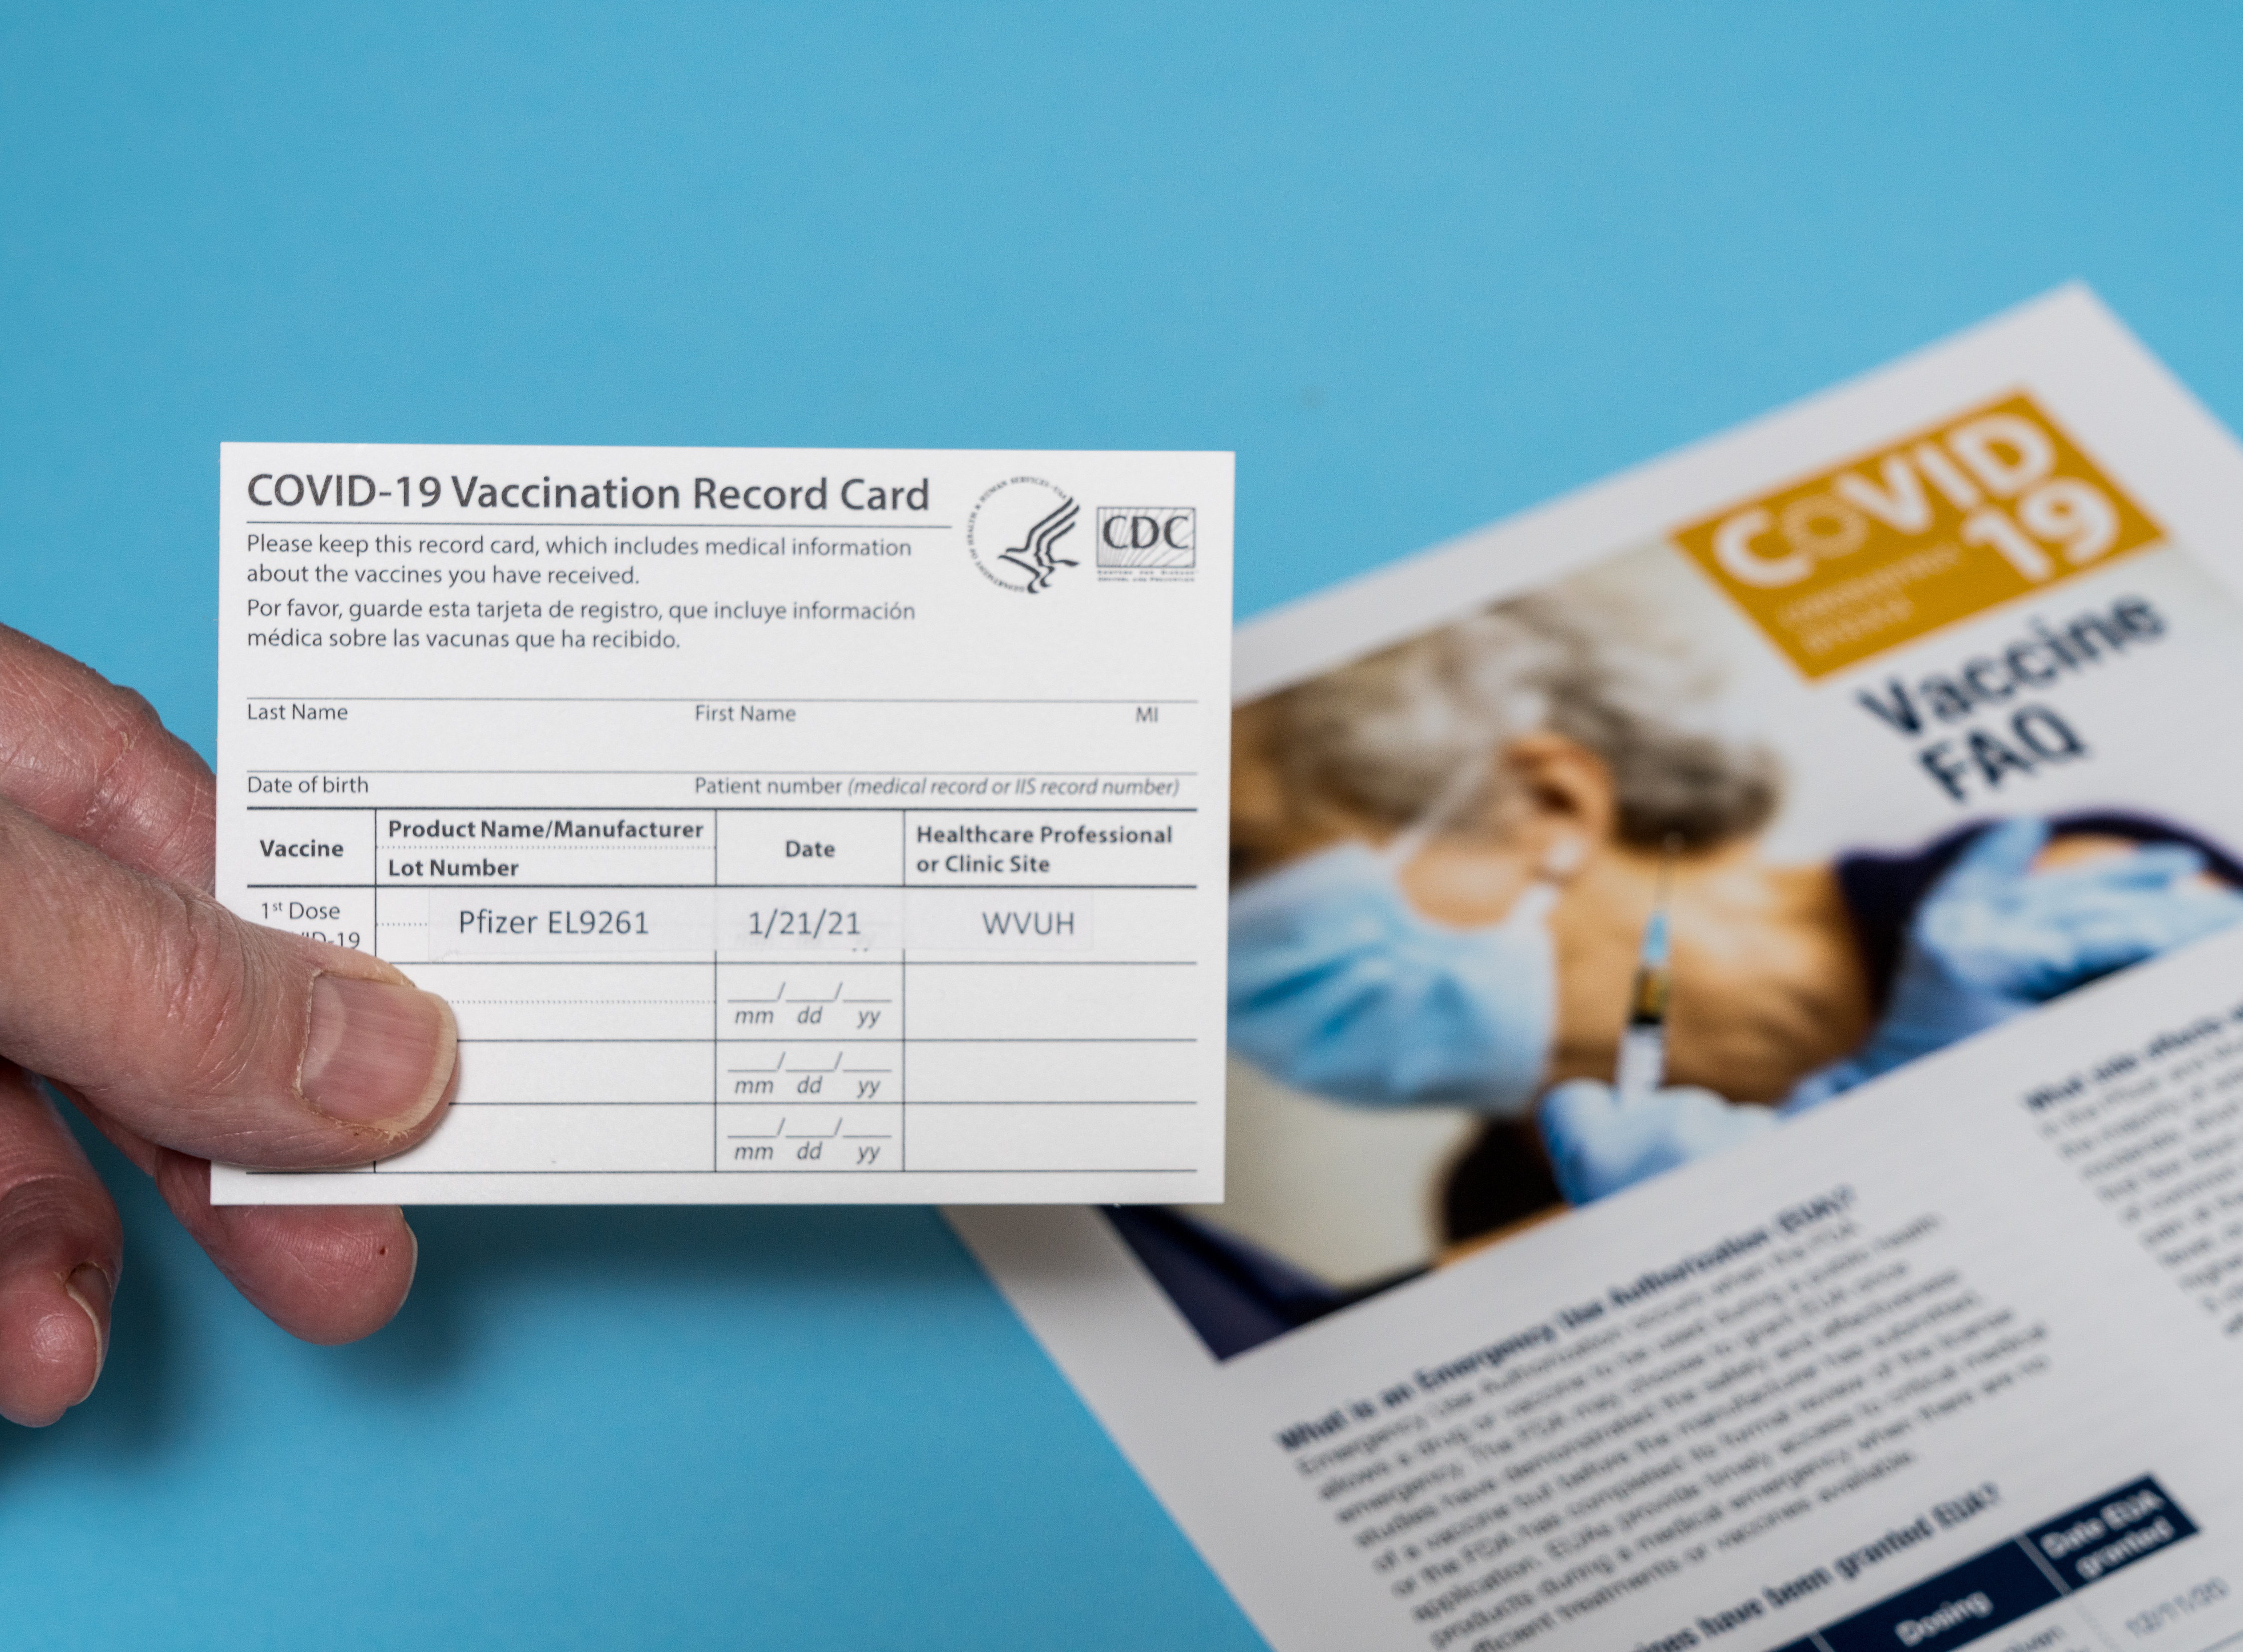 Covid-19 Vaccination Record Card showing first dose of Pfizer vaccine